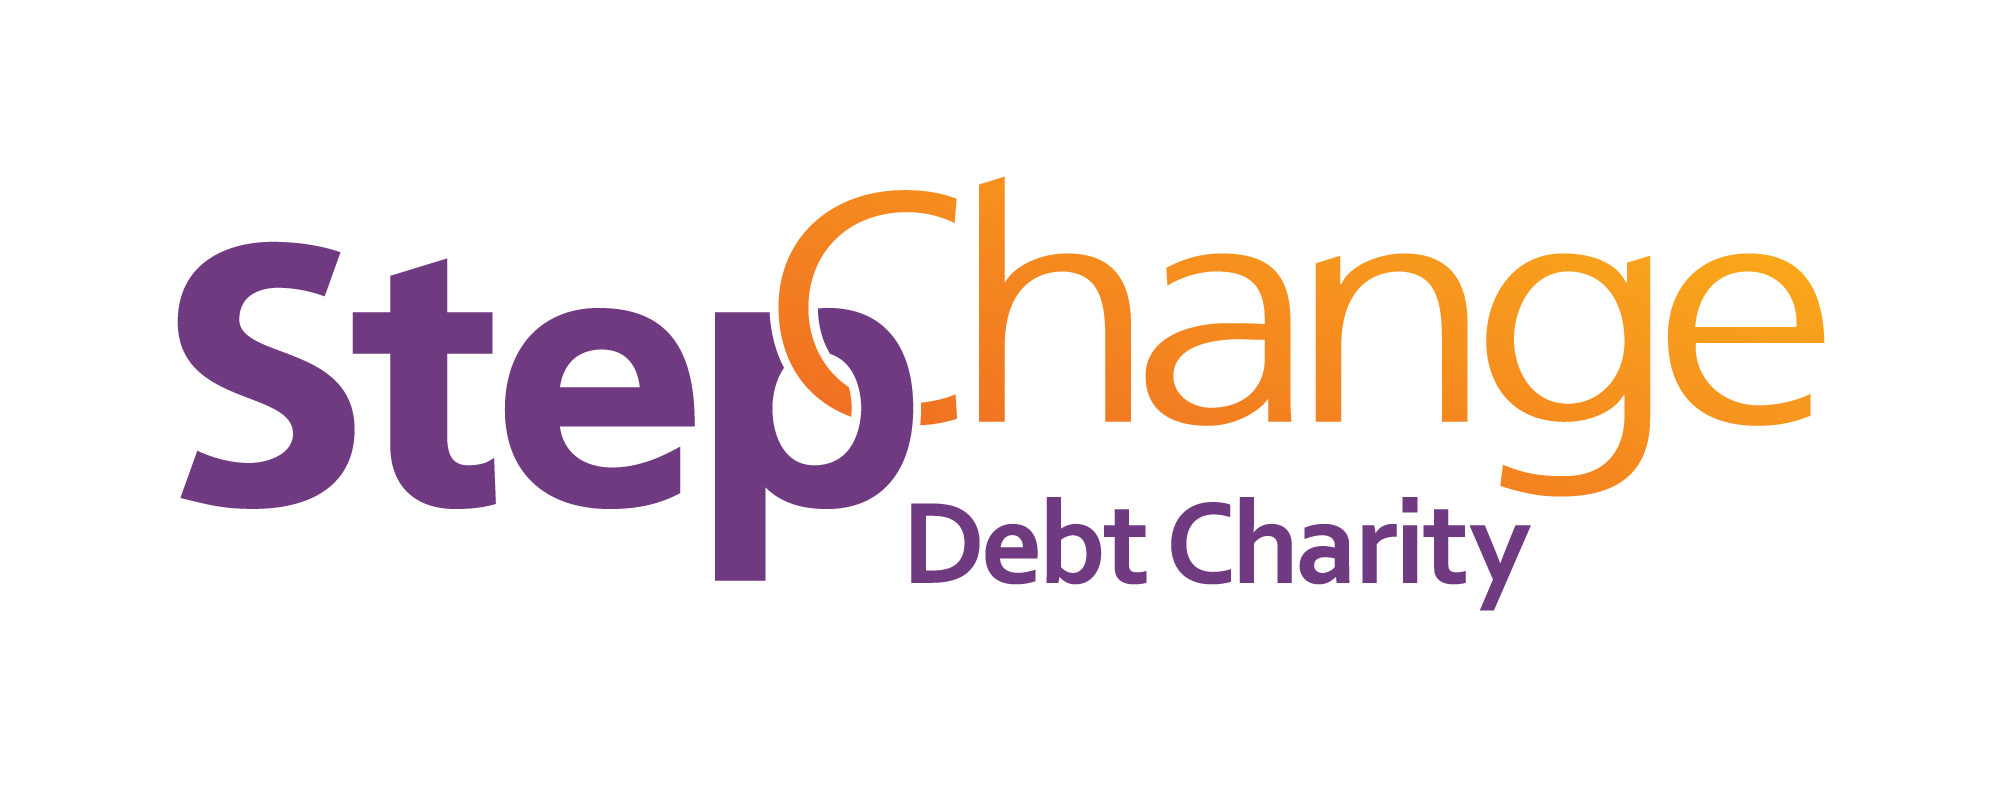 StepChange is helping a growing proportion of under-40s with debts